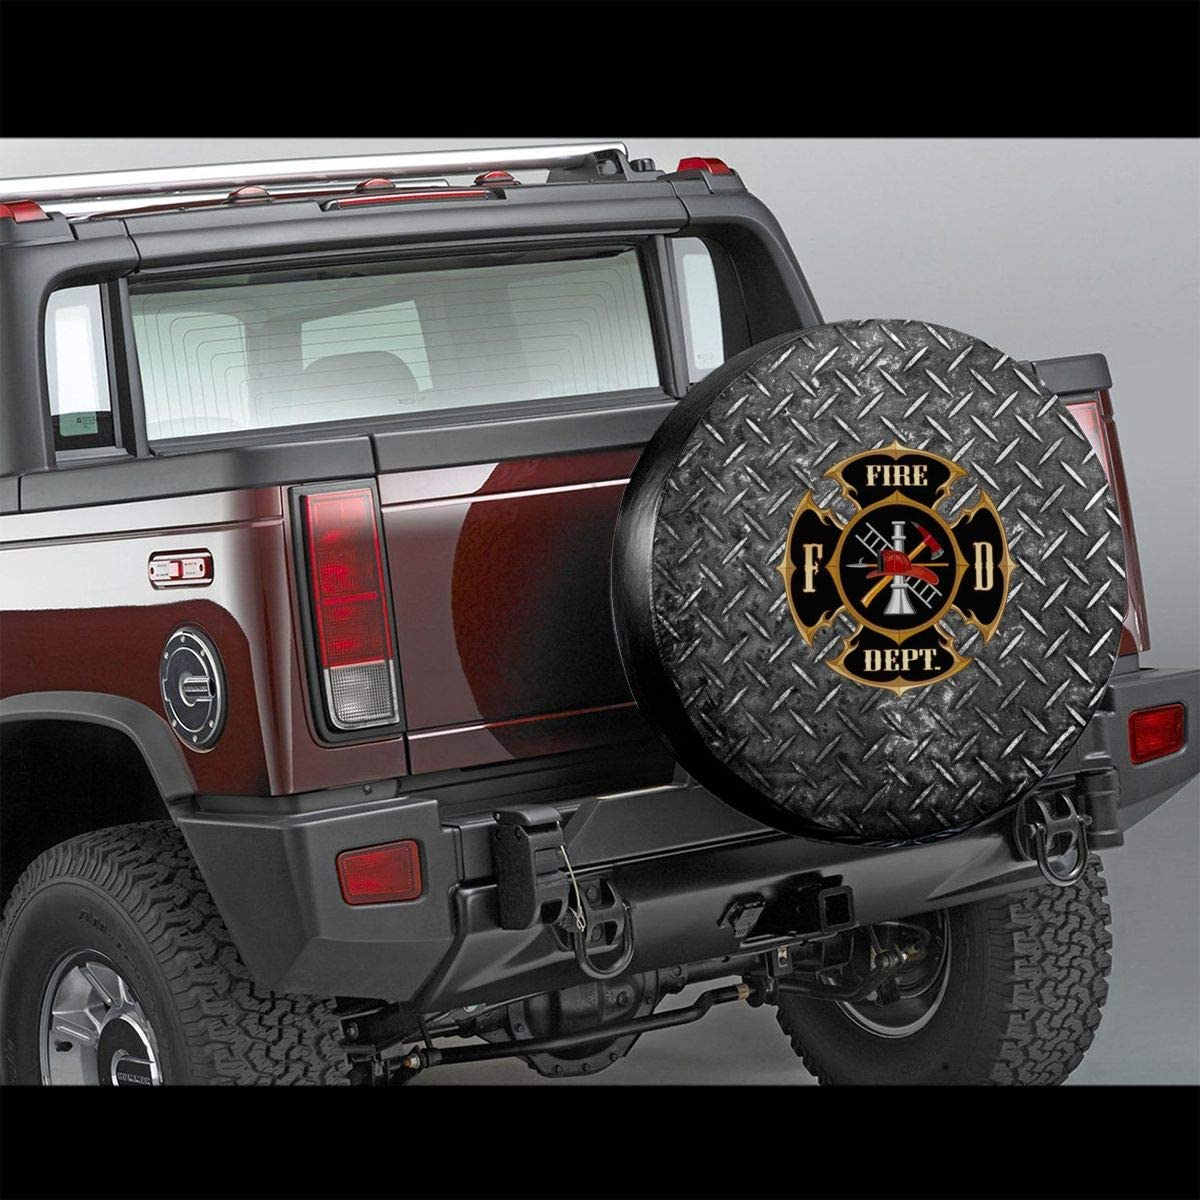 14 15 16 17 Fire Department Logo Firefighter Spare Tire Cover Dust-Proof Waterproof Wheel Covers Sunscreen Corrosion Protection for Trailer RV SUV Truck Camper Travel